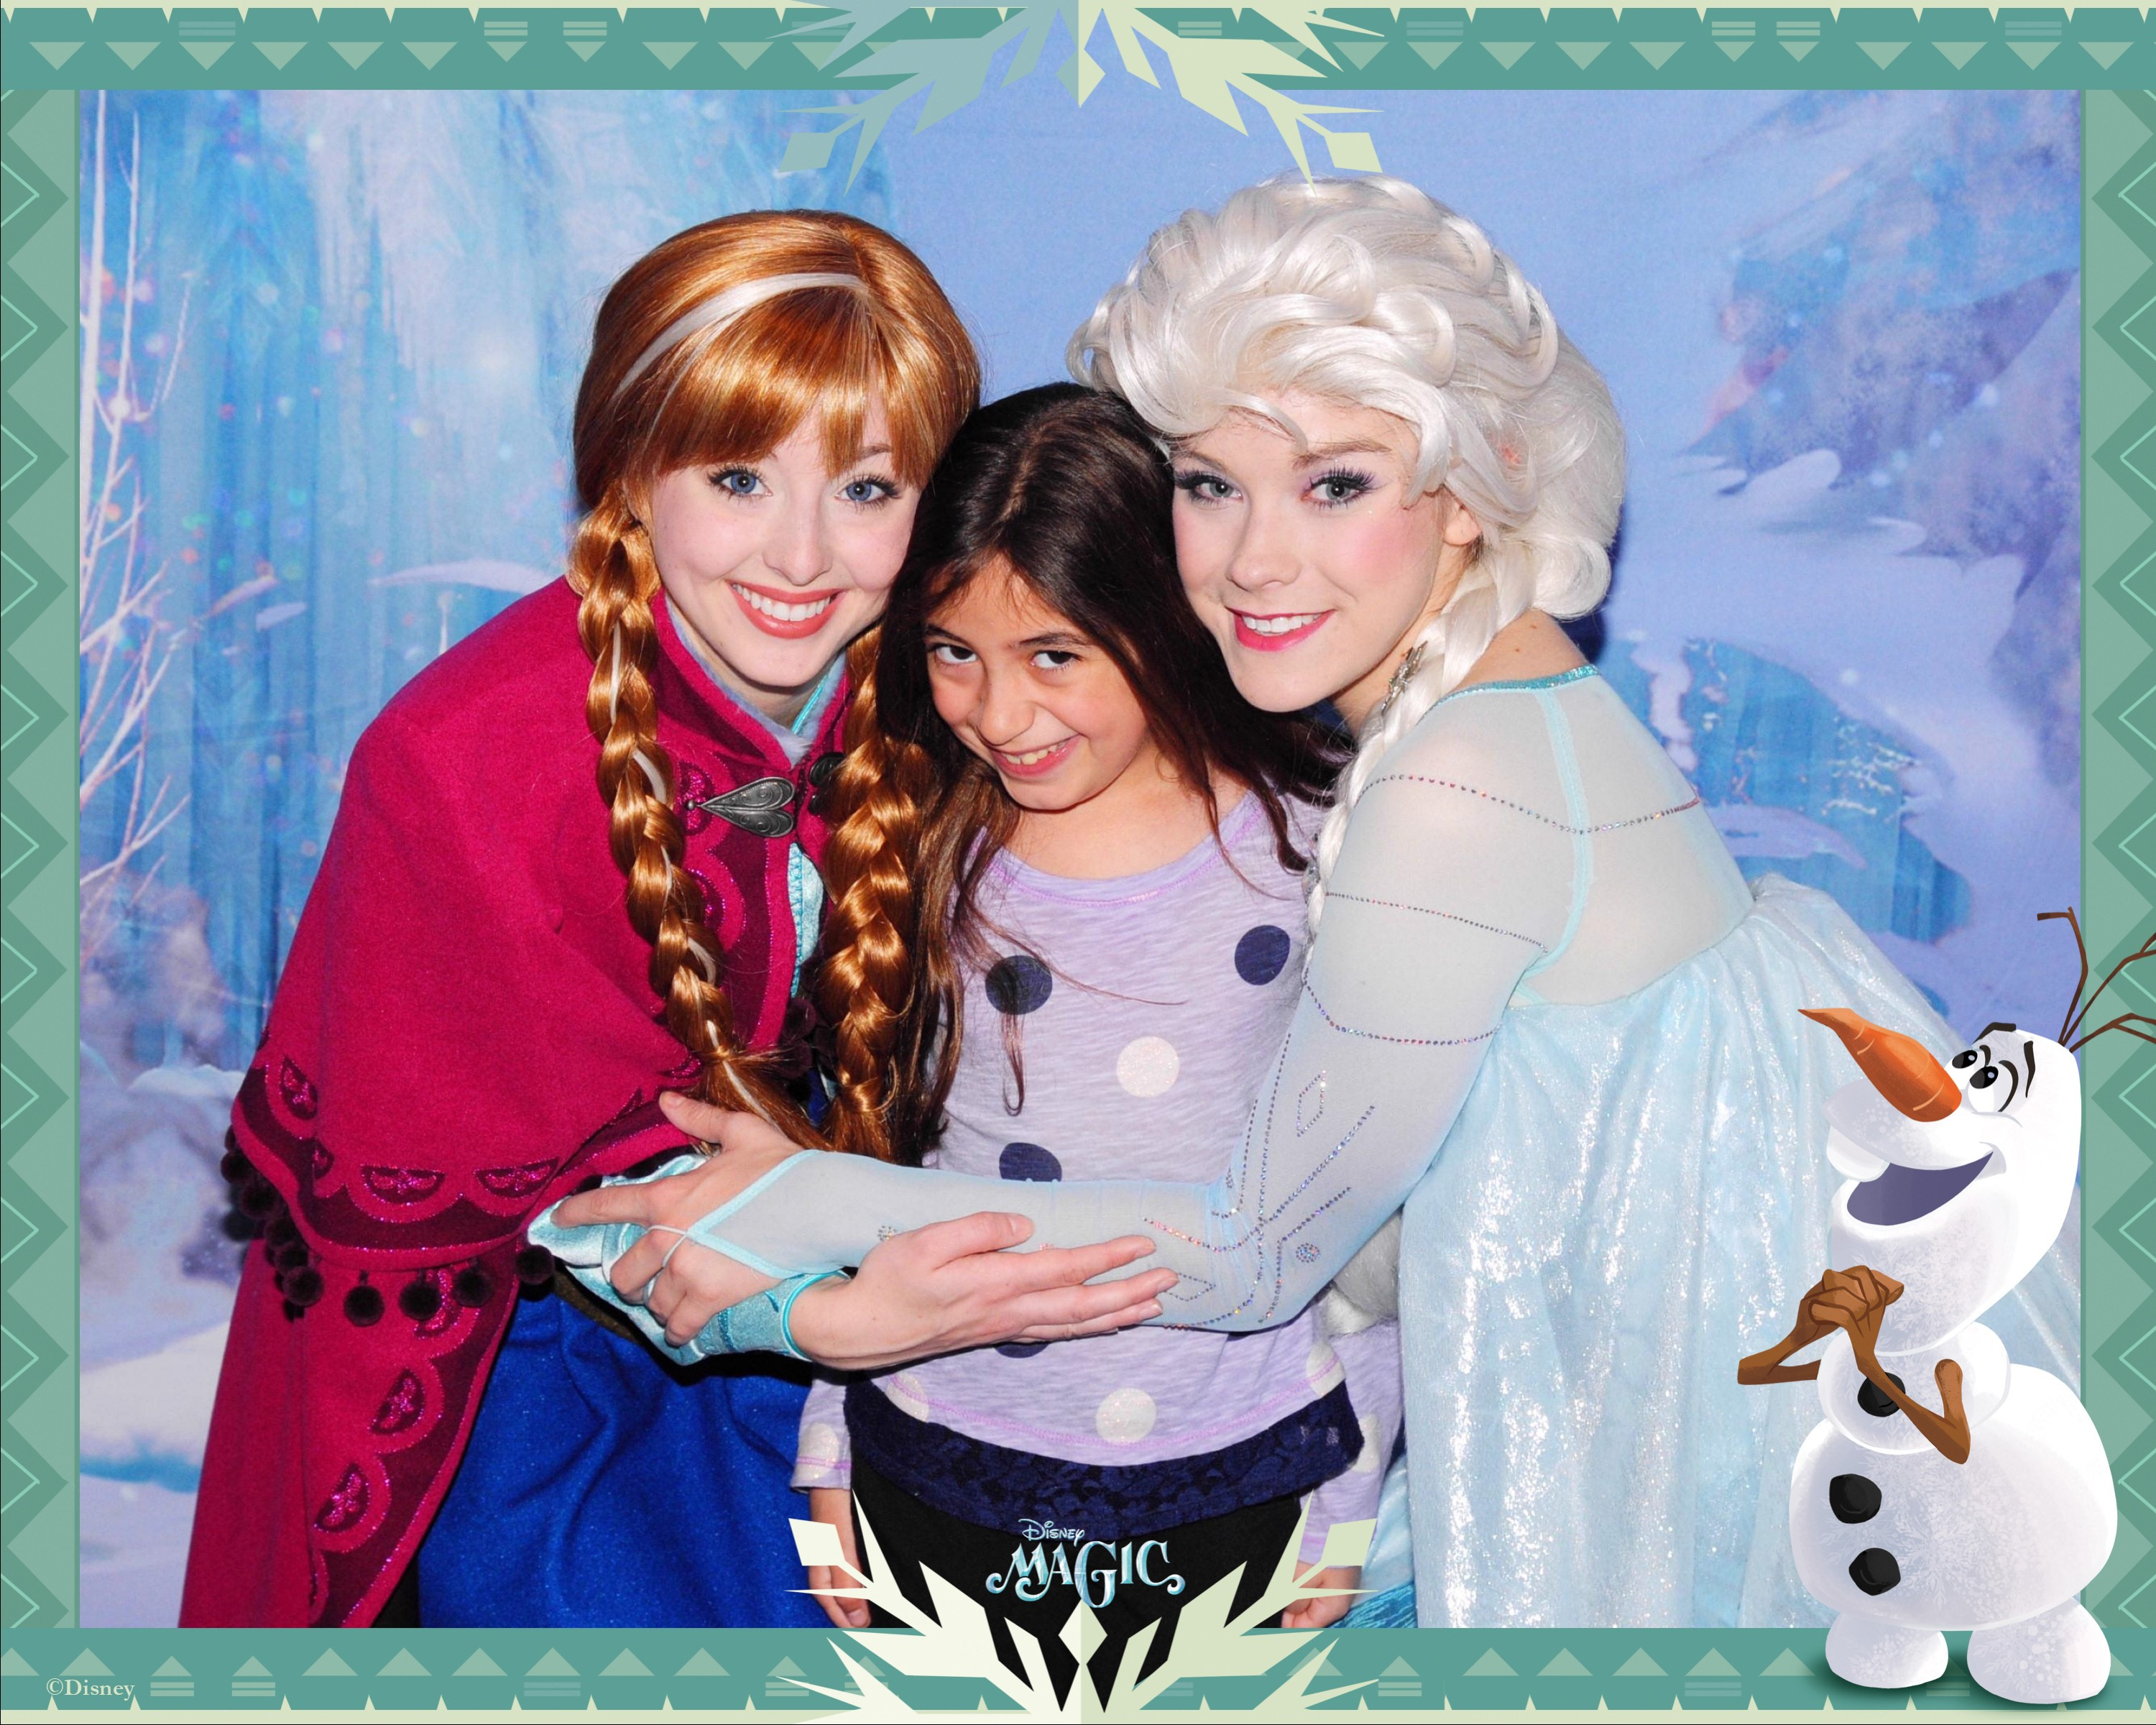 Yes! Your little princess can meet Anna and Elsa without YOU having to go to the theme park!